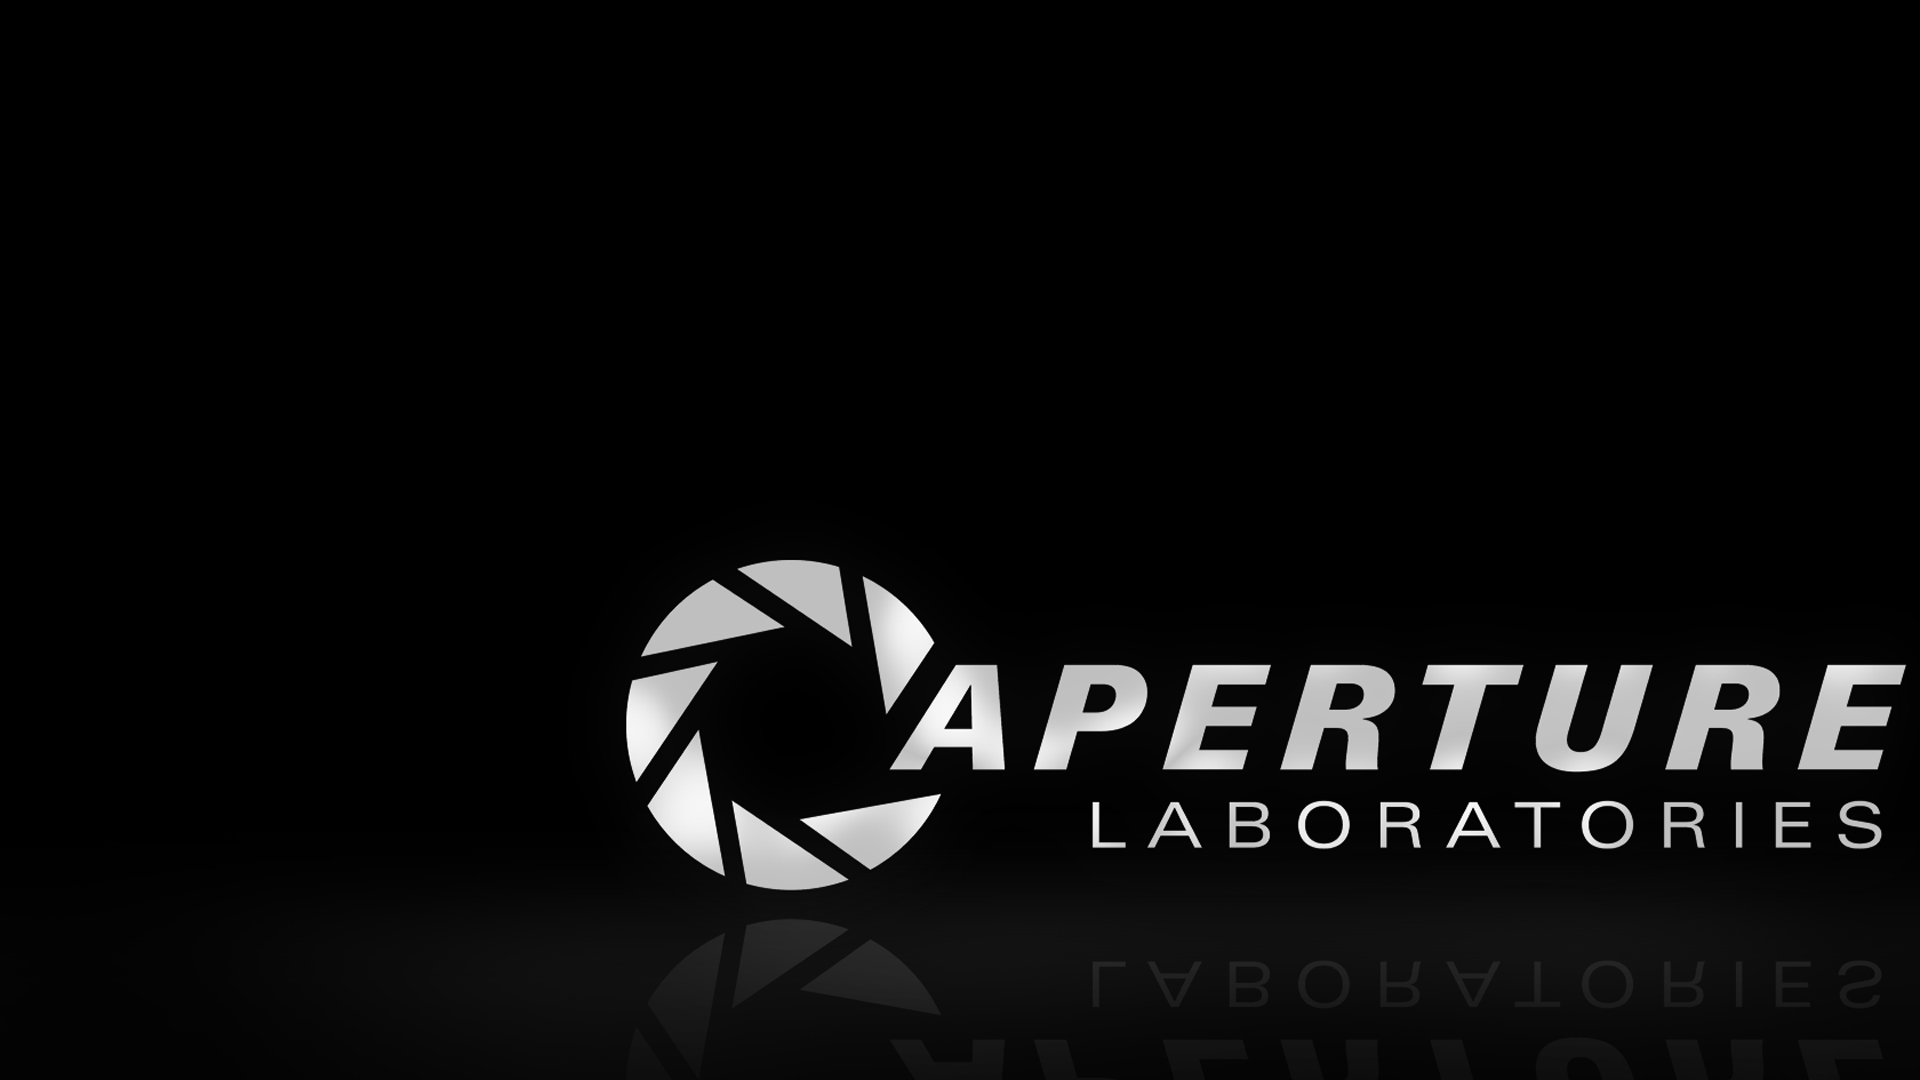 10 Most Popular Aperture Laboratories Wallpaper 1920X1080 FULL HD 1920×1080 For PC Desktop